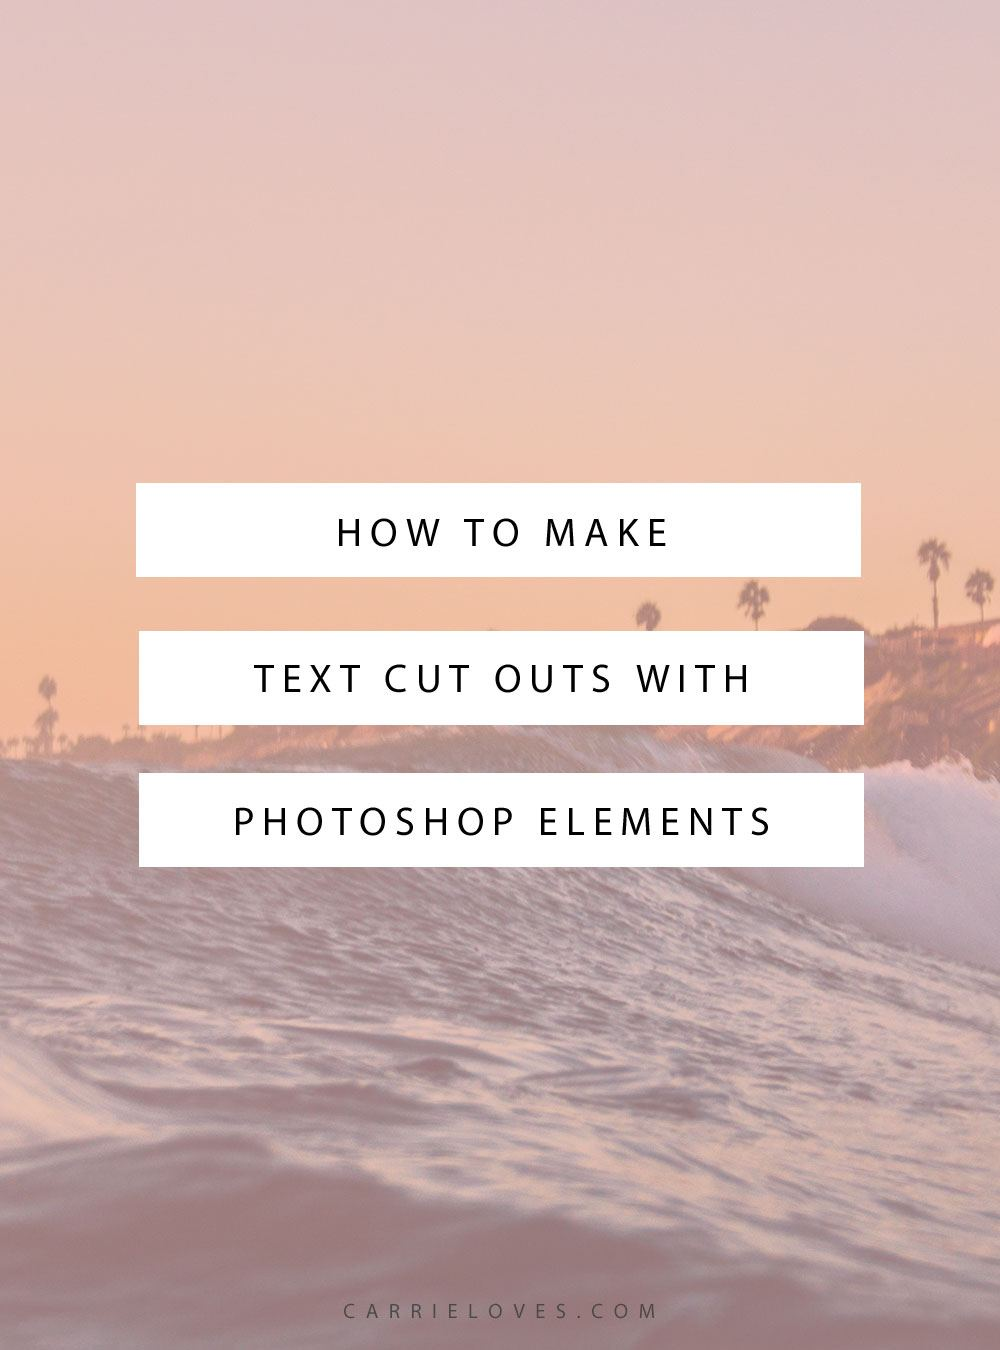 How to make text cut outs with PSE - Carrie Loves Blog